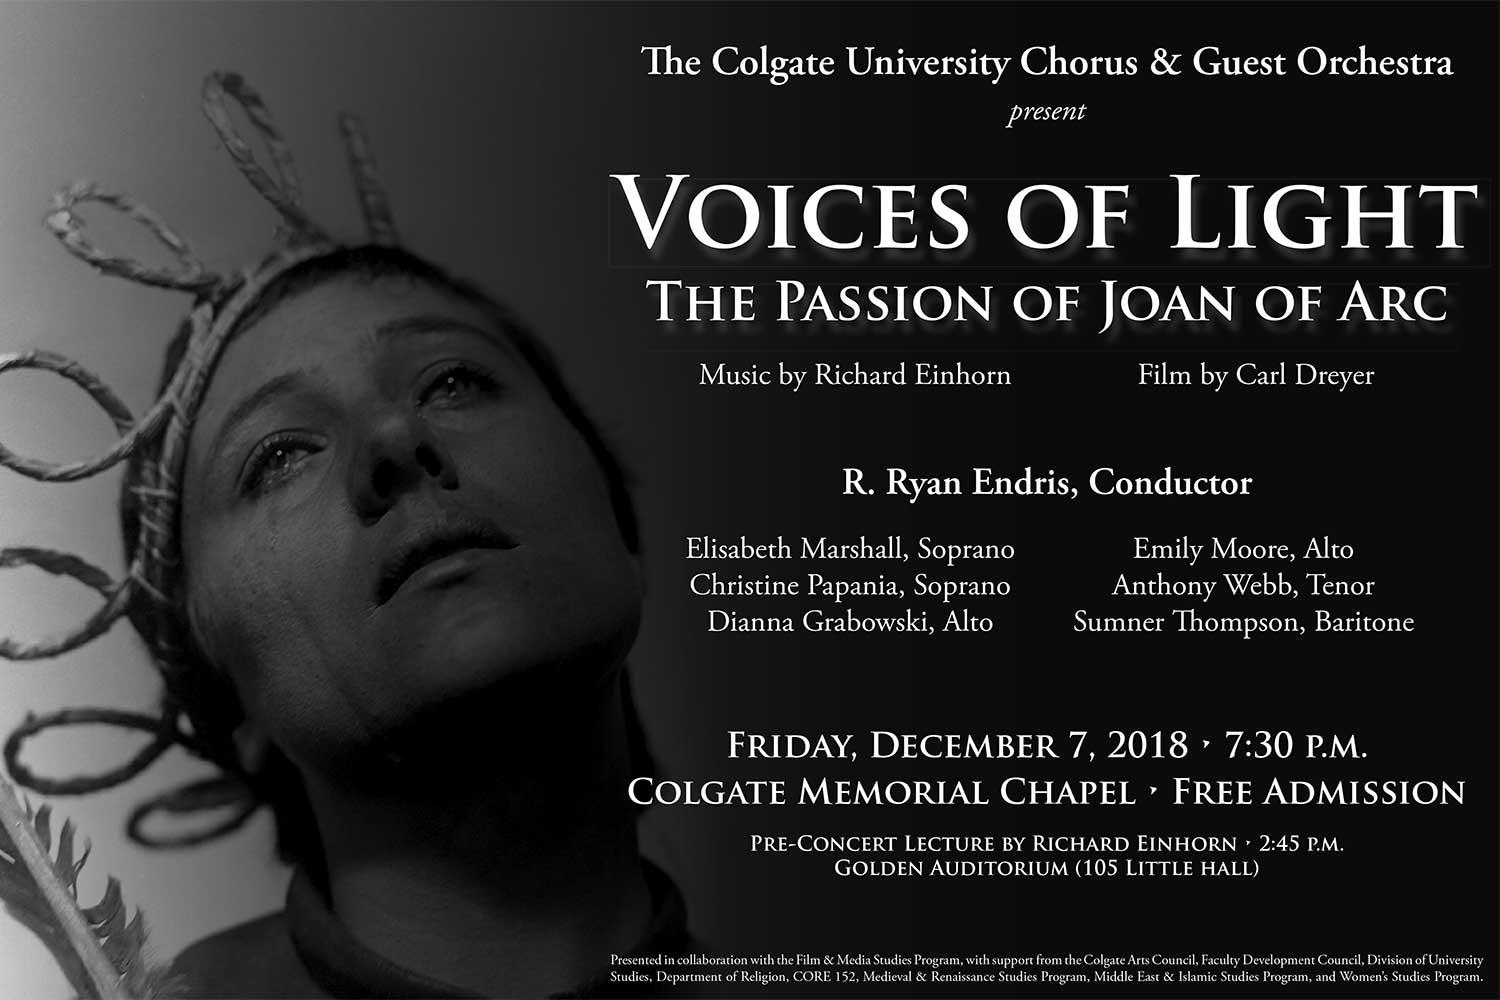 Voices of Light promotional poster showing Renée Falconetti as Joan of Arc